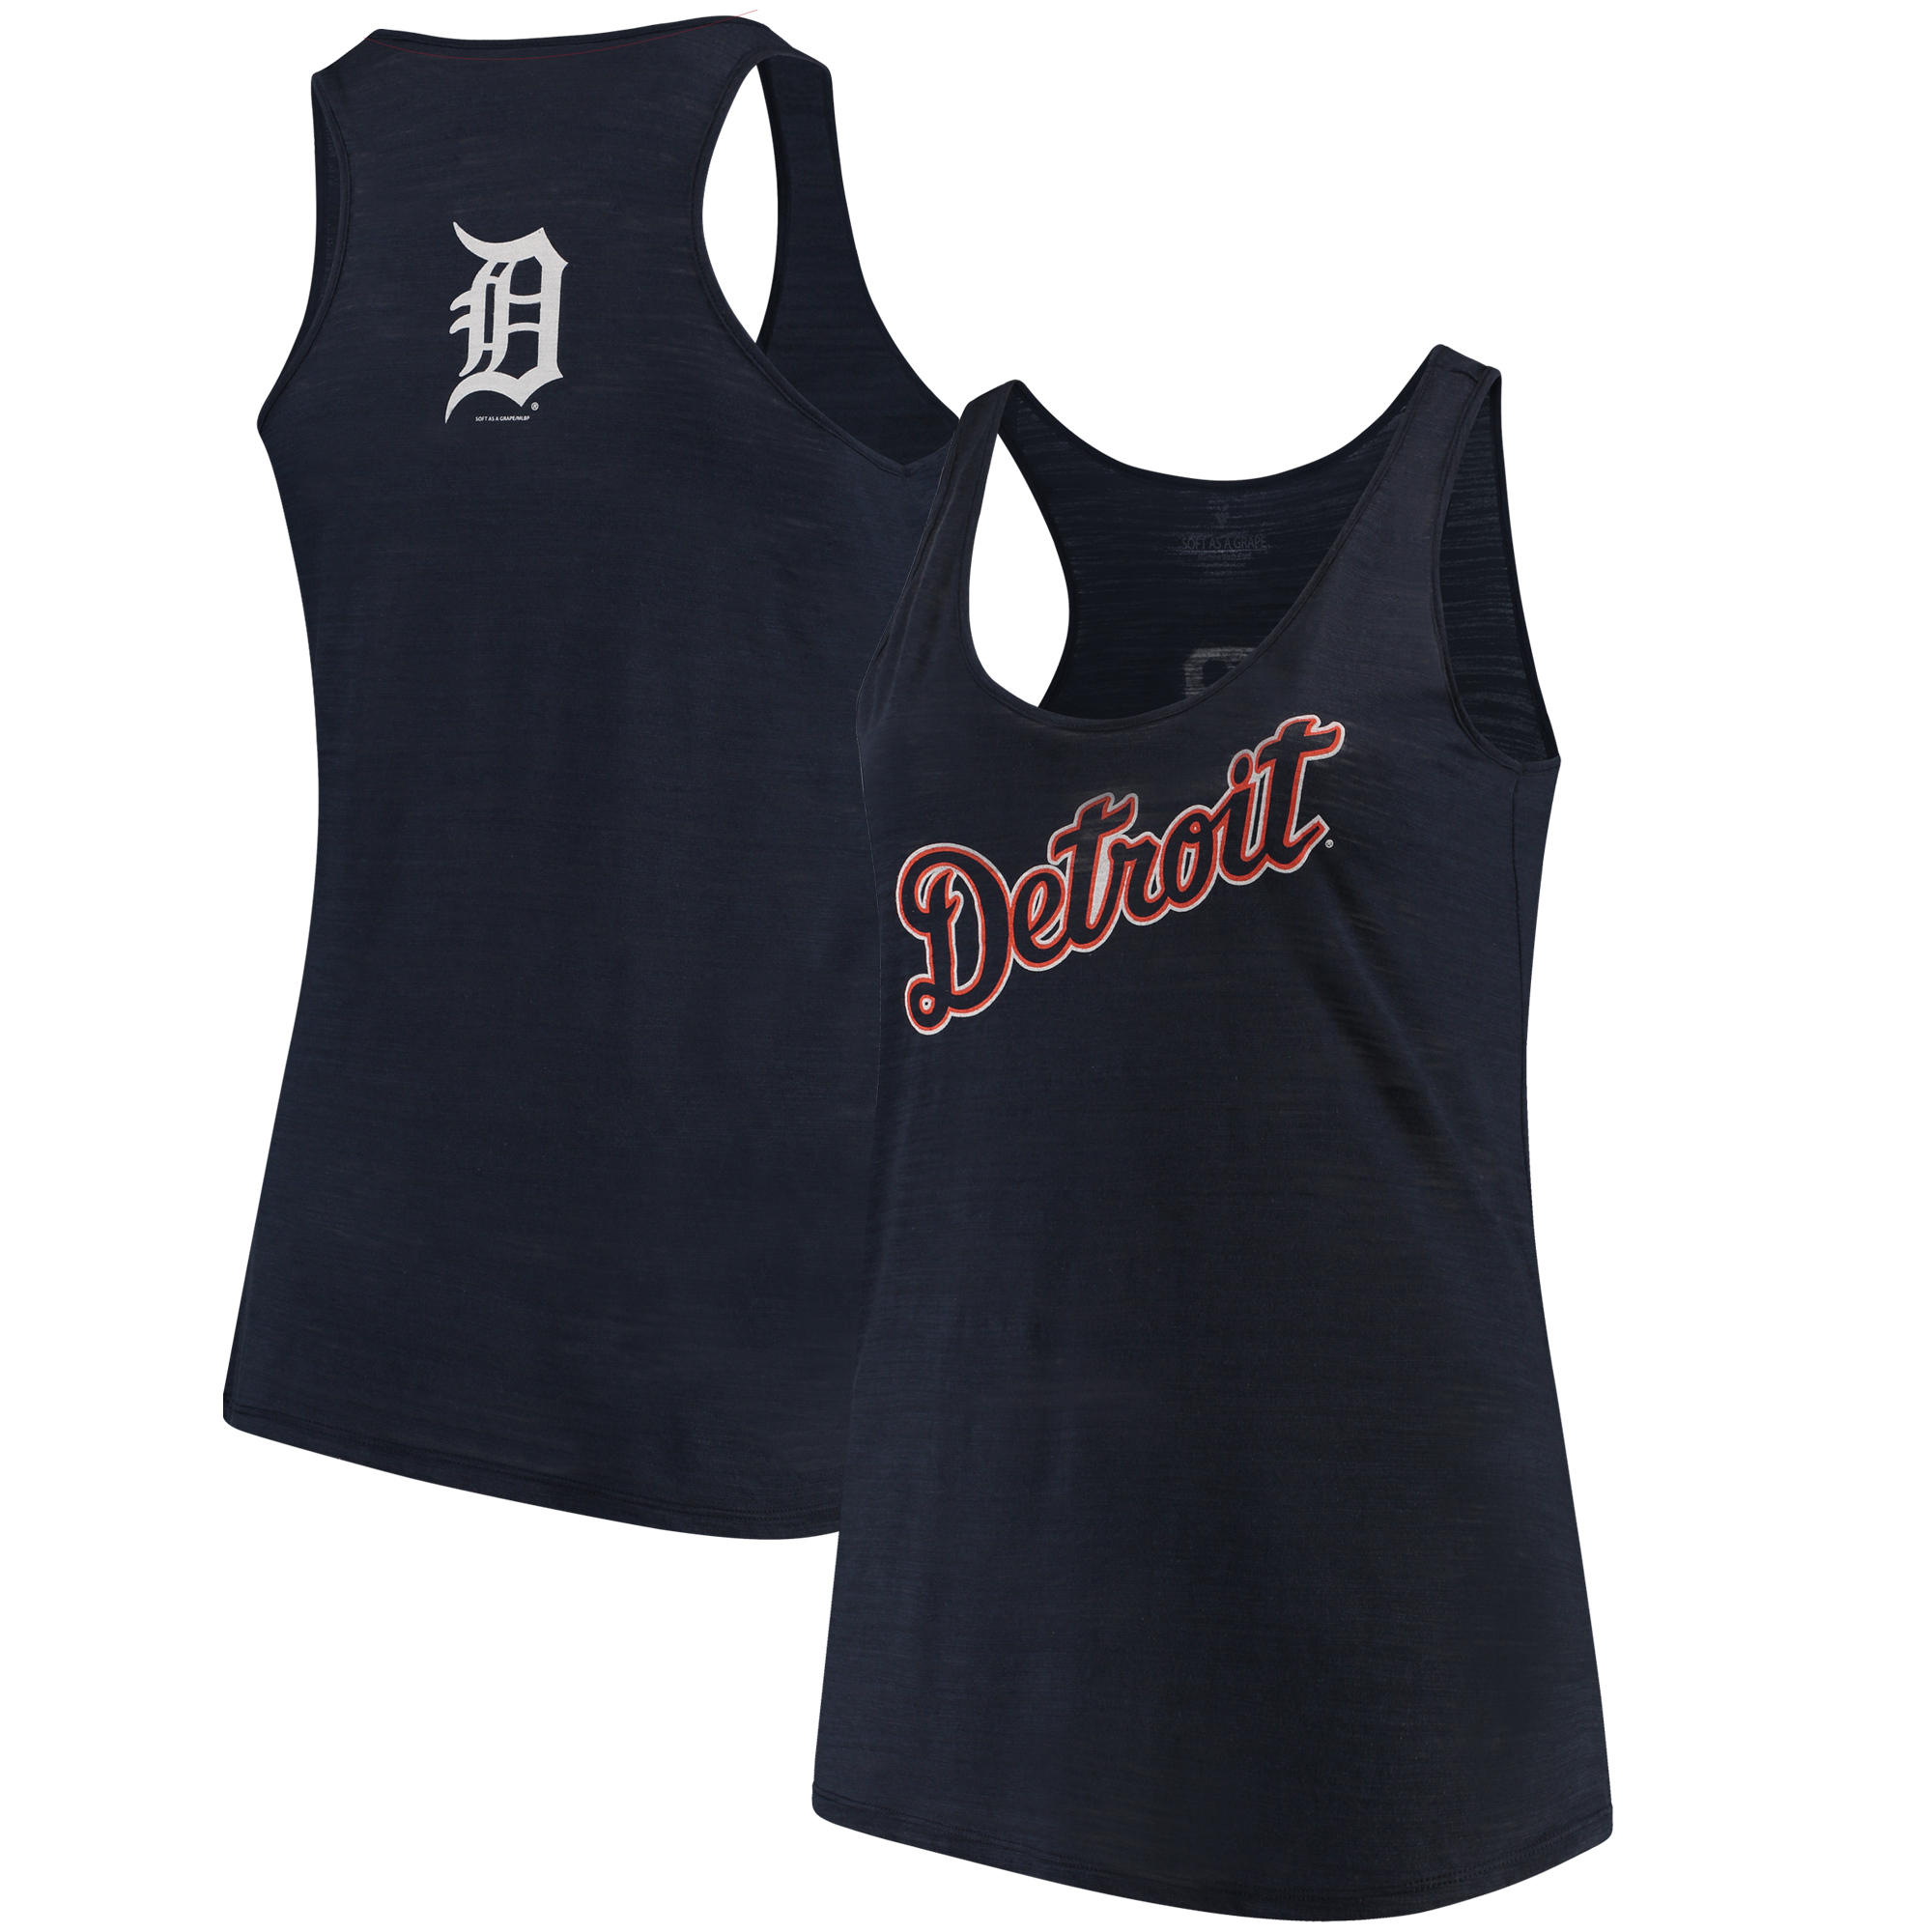 Detroit Tigers Soft as a Grape Women's Plus Size Swing for the Fences Racerback Tank Top - Navy